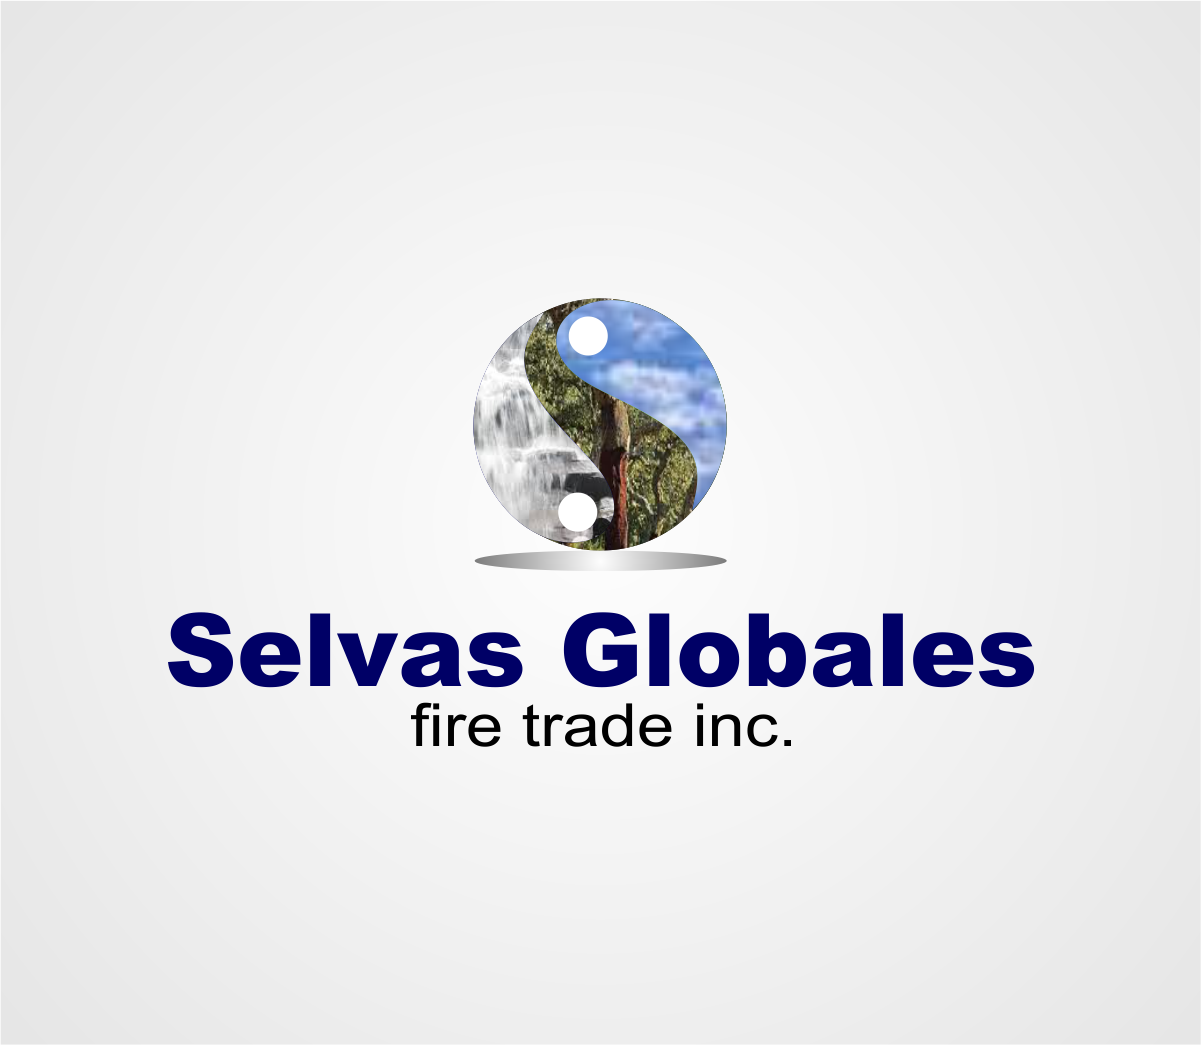 Logo Design by Agus Martoyo - Entry No. 84 in the Logo Design Contest Captivating Logo Design for Selvas Globales Fair Trade Inc..